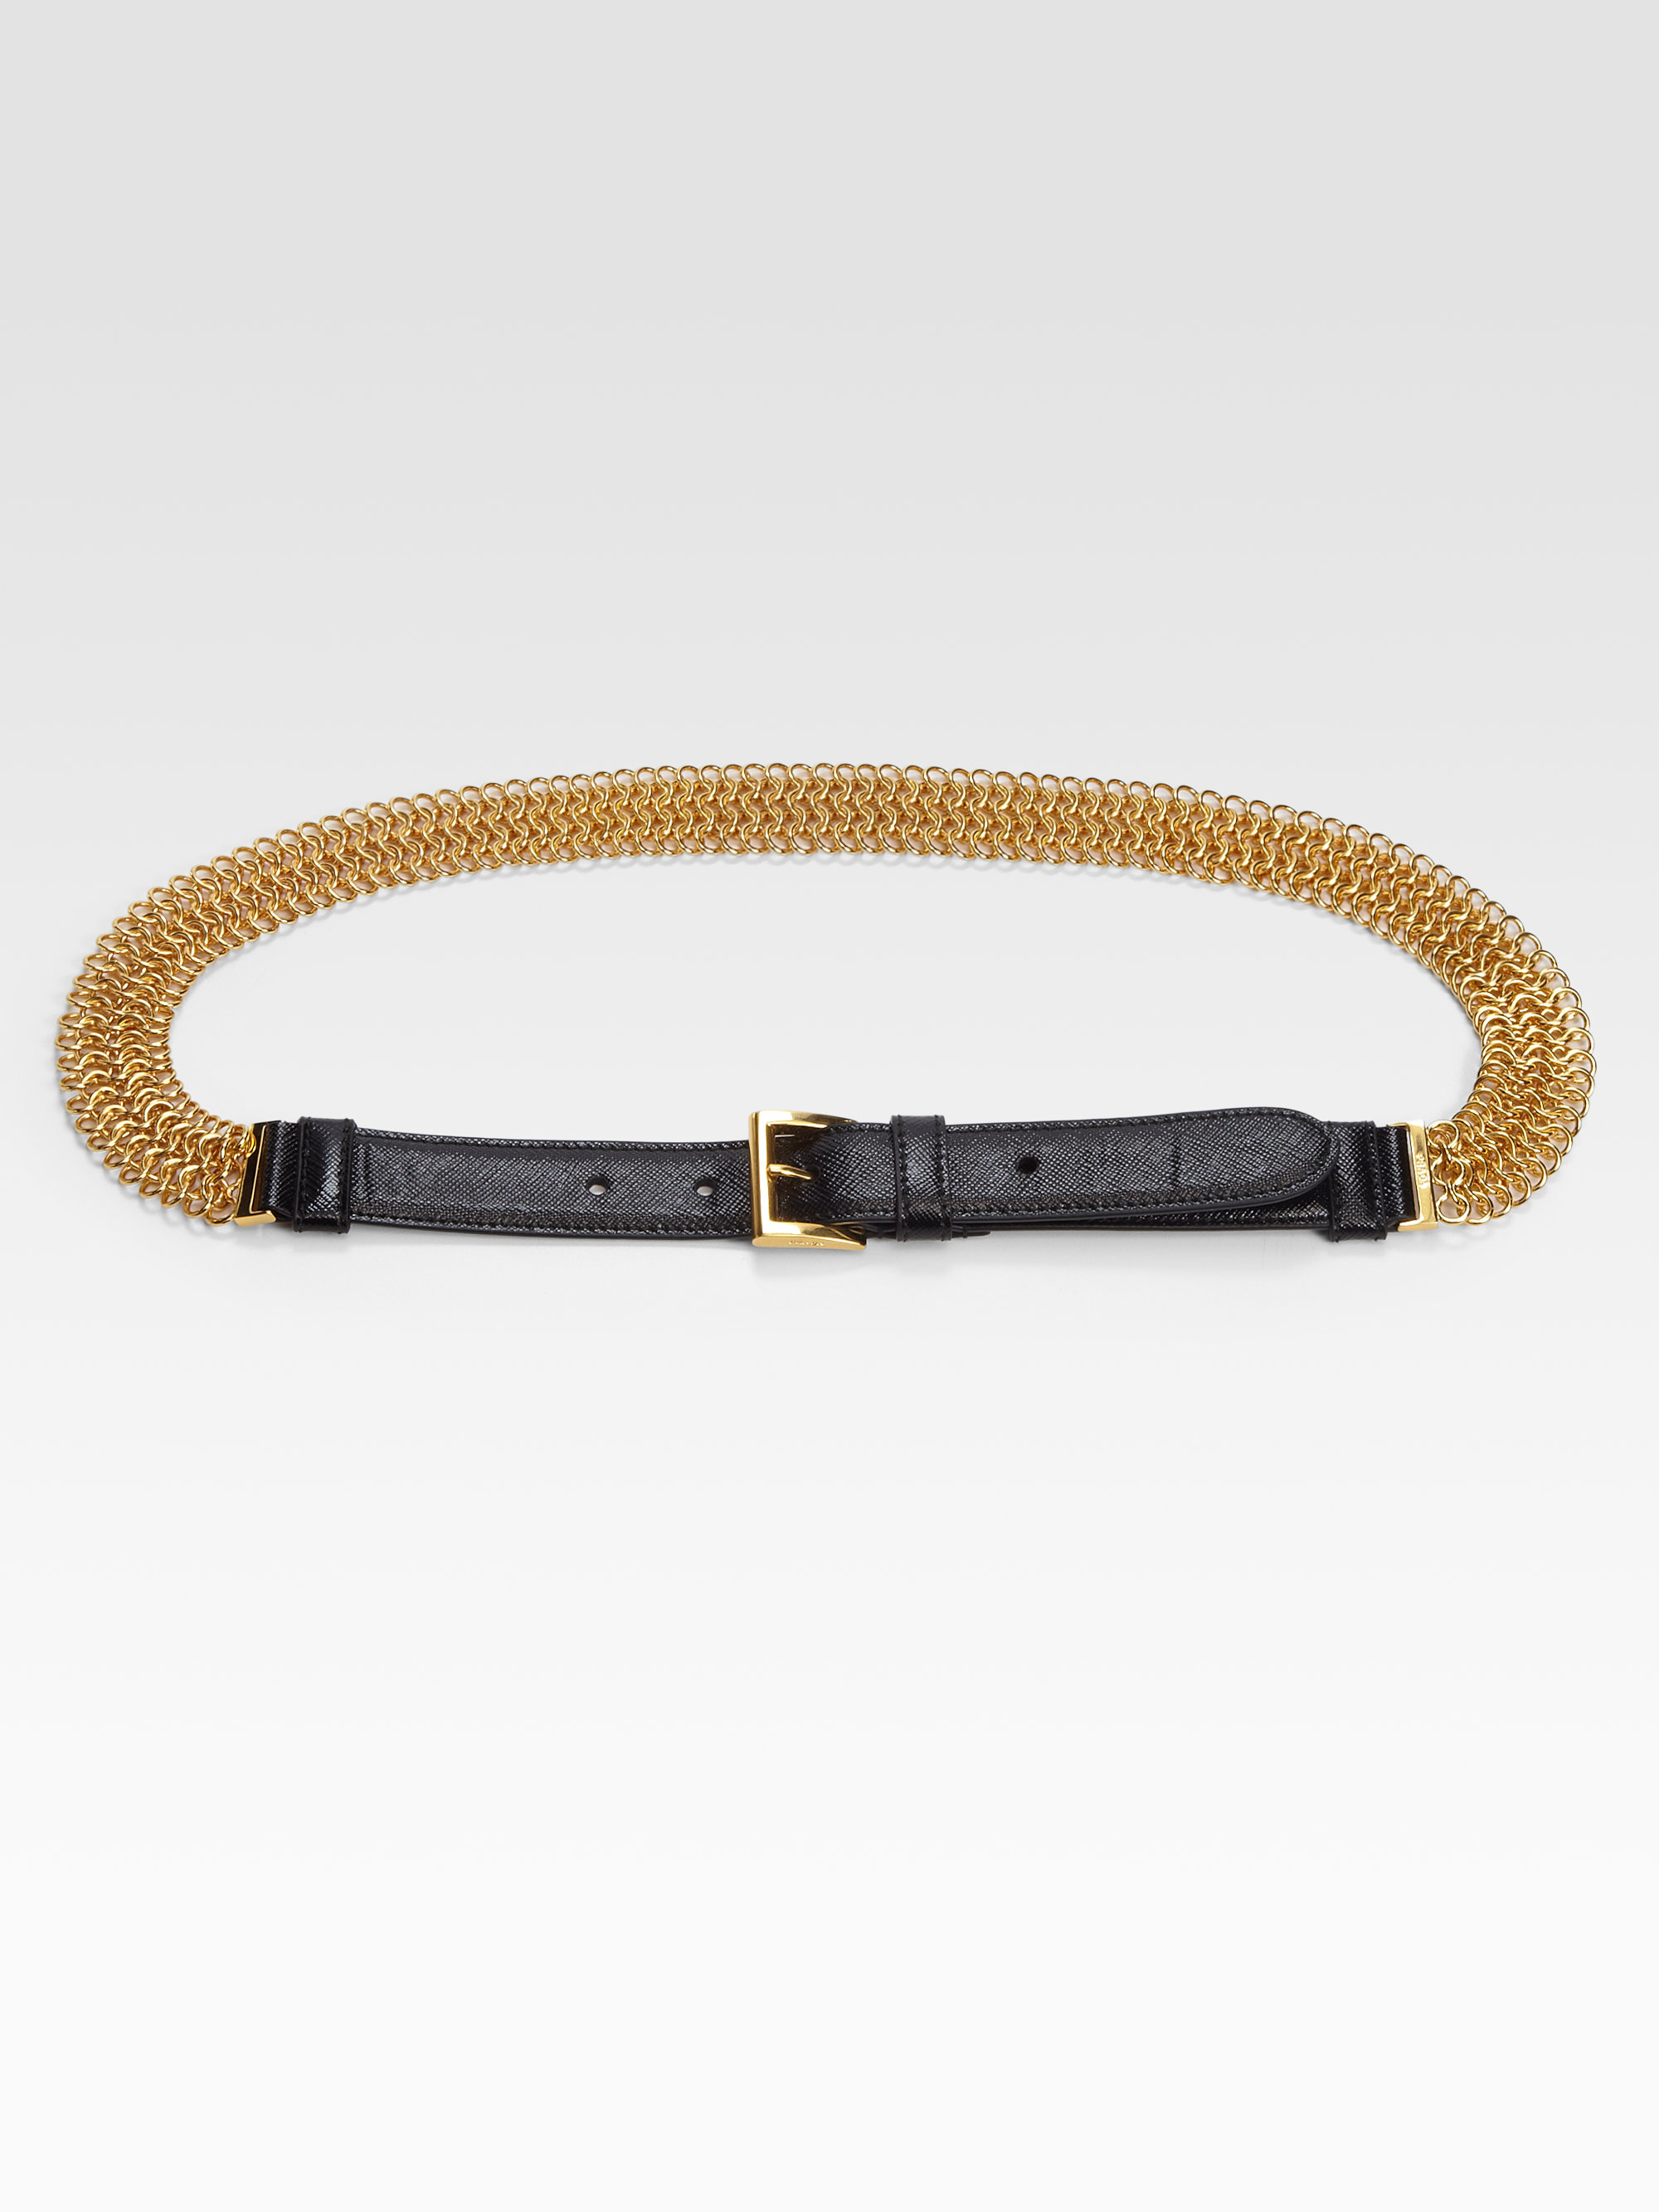 Prada Saffiano Vernice Chain Belt in Gold (black-gold) | Lyst